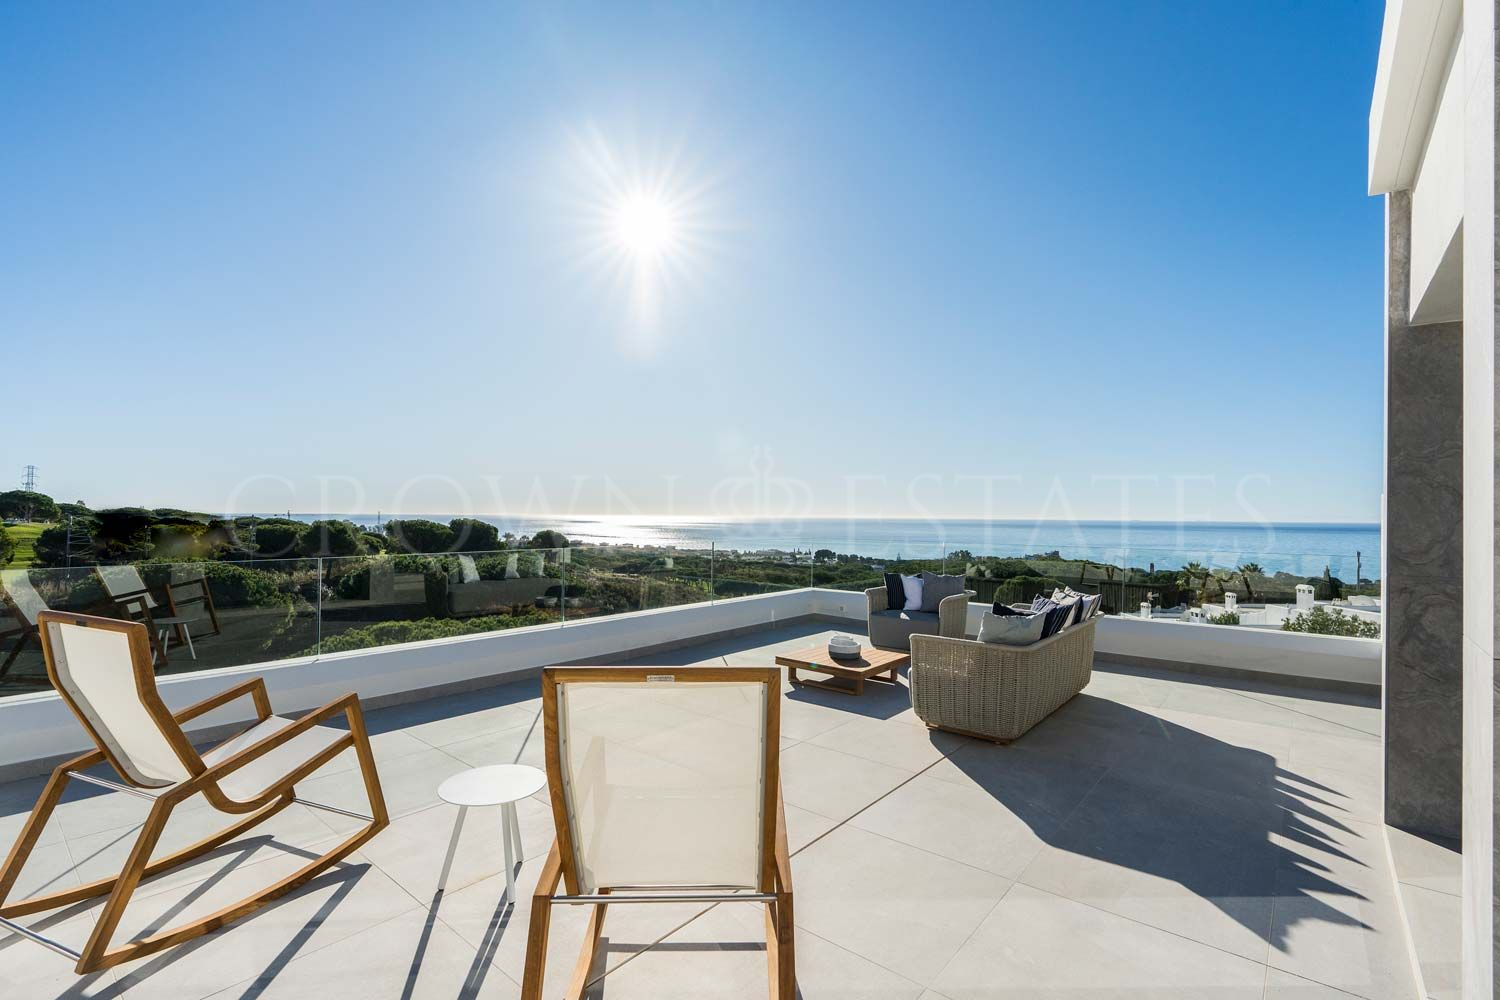 25 dwellings with views of the Mediterranean sea. You will experience allkinds of comforts and a truly exclusive lifestyle in the natural environmentsof your dreams